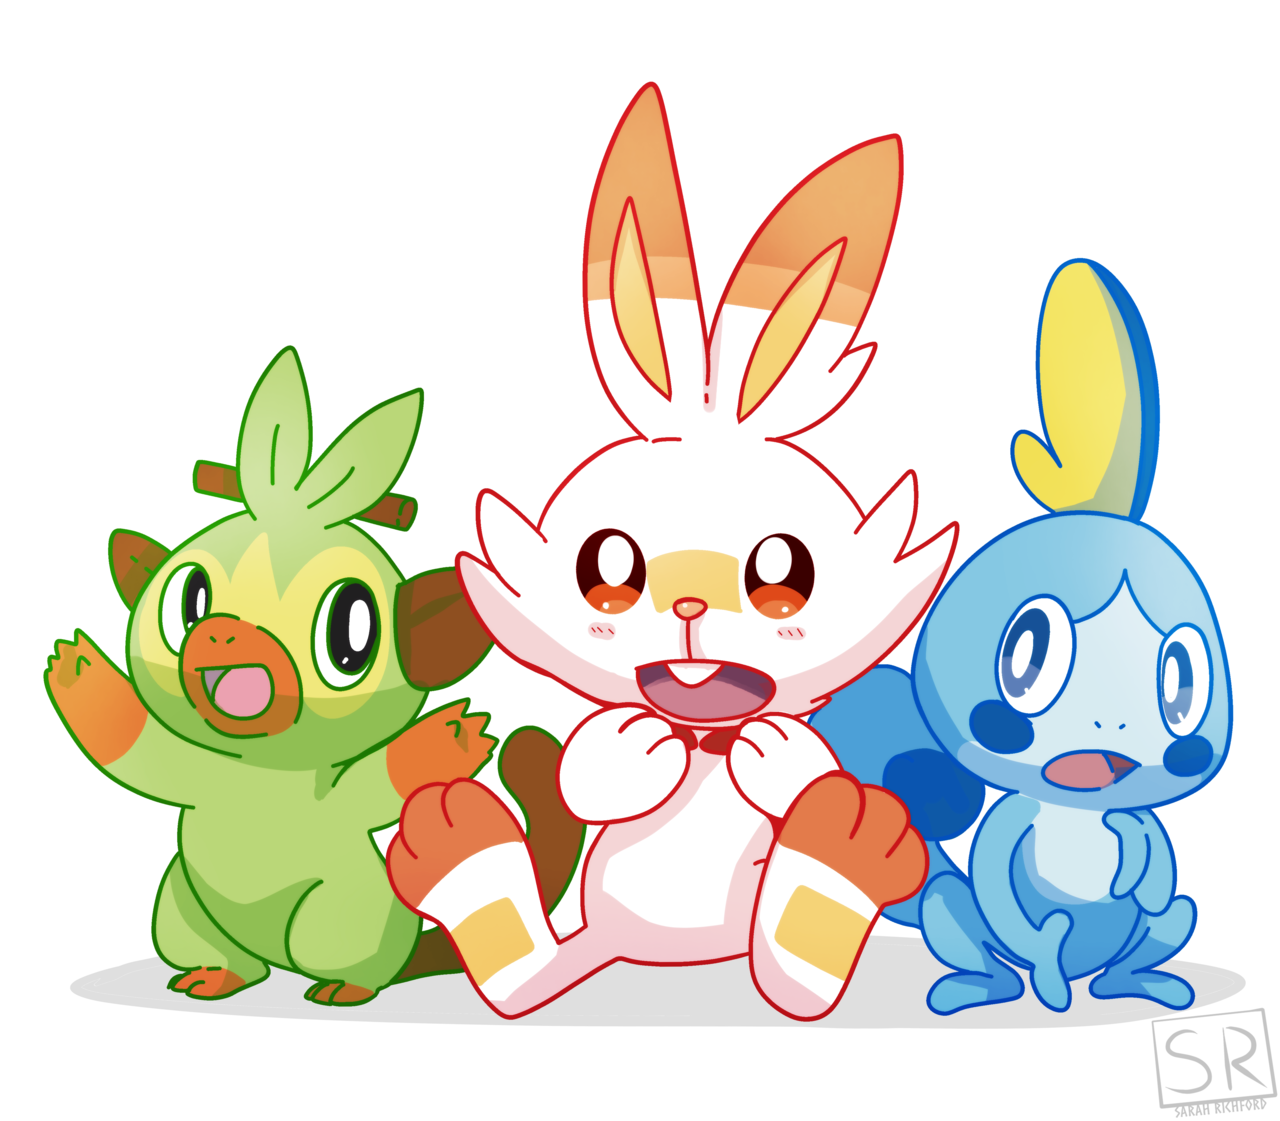 Aah I Love The New Starters Who Do You Like Best Rushed Quick Art And I Will Definitely Draw More Art Of These Cute G Pokemon Shield Drawing Pokemon Starters